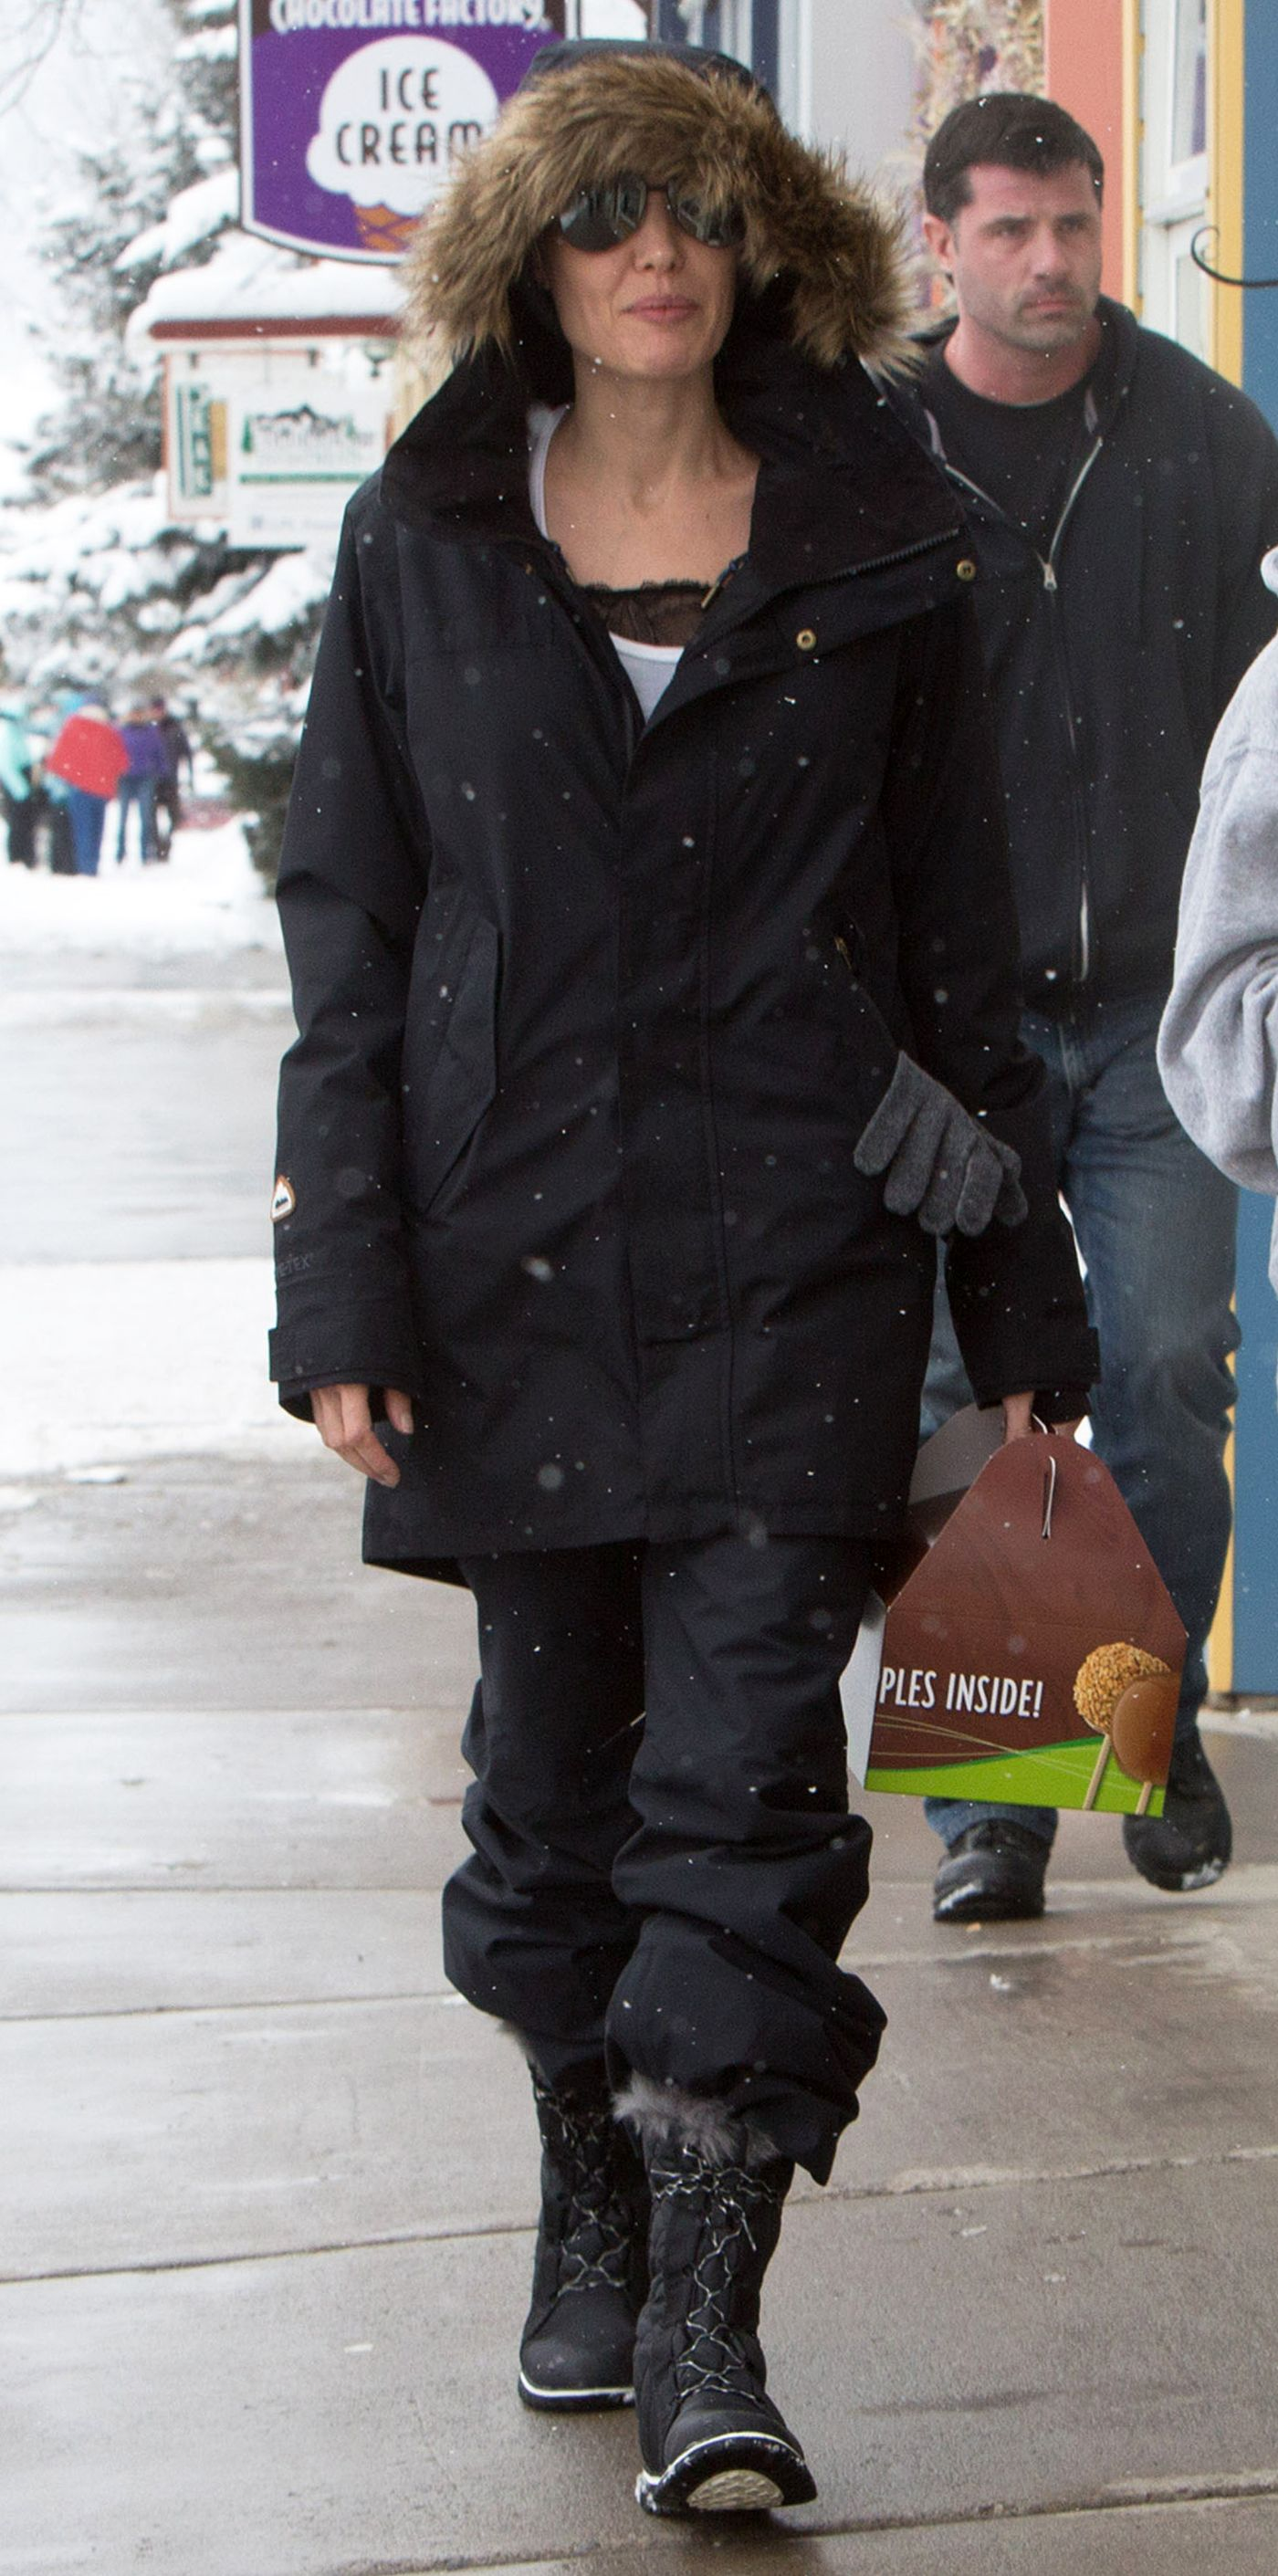 790a8290325 Celebrities Love Their Sorel Boots - Angelina Jolie from InStyle.com